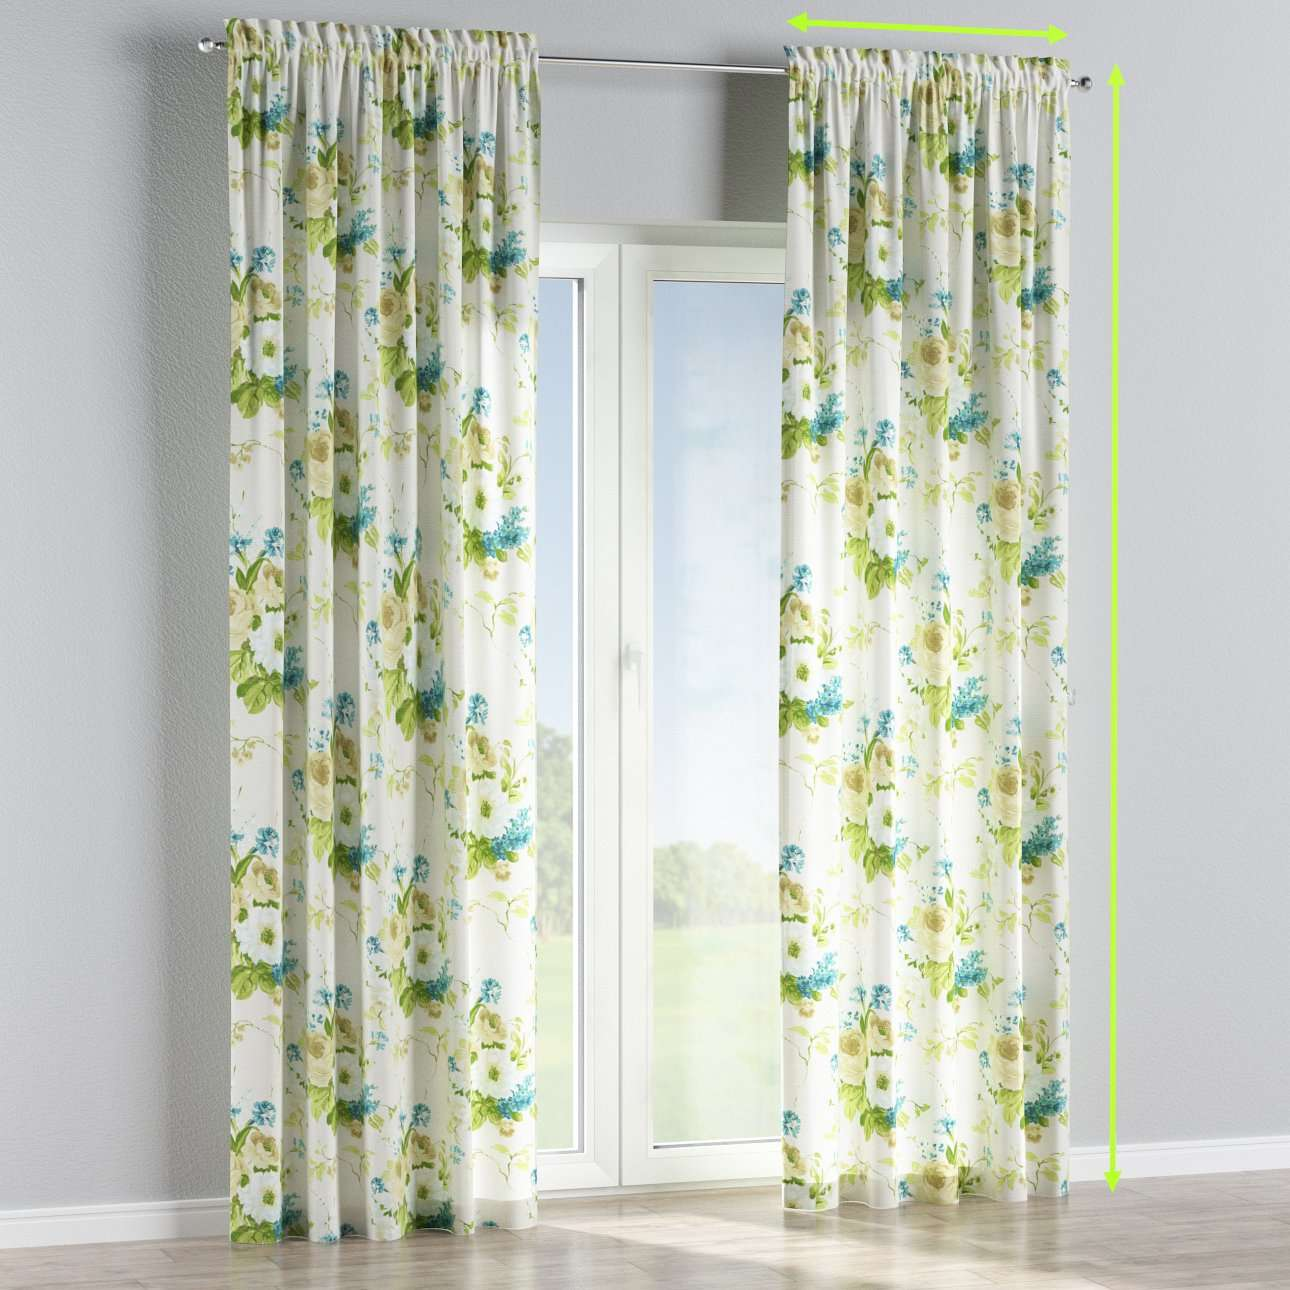 Slot and frill lined curtains in collection Mirella, fabric: 141-15